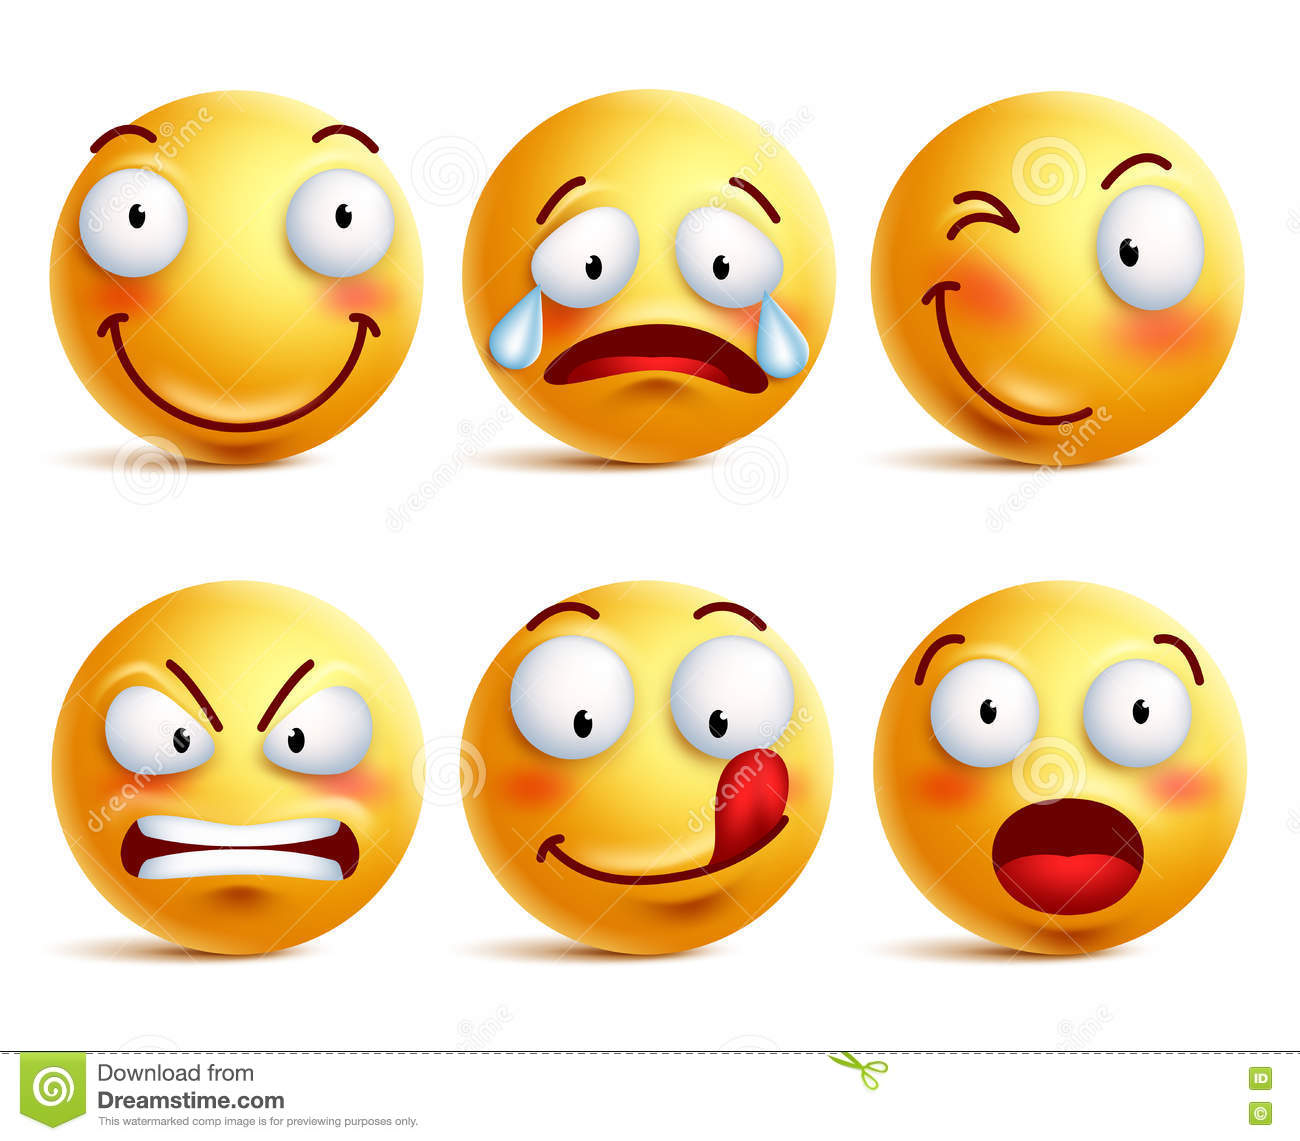 Set of smiley face icons or yellow emoticons with different facial expressions